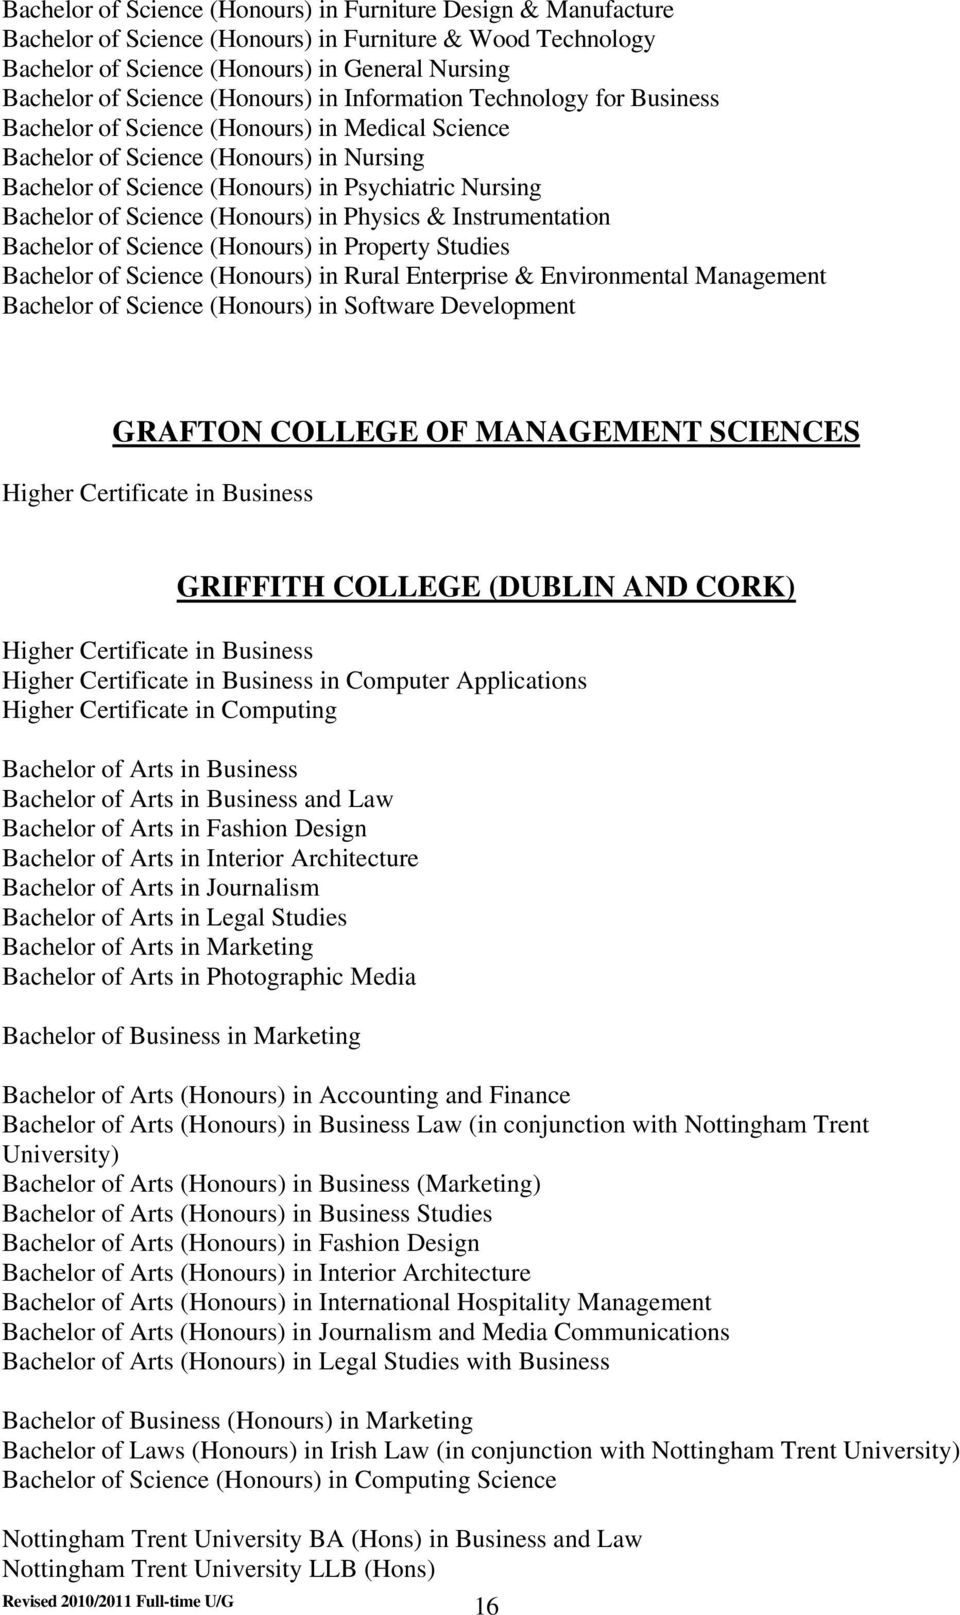 Bachelor of Science (Honours) in Physics & Instrumentation Bachelor of Science (Honours) in Property Studies Bachelor of Science (Honours) in Rural Enterprise & Environmental Management Bachelor of